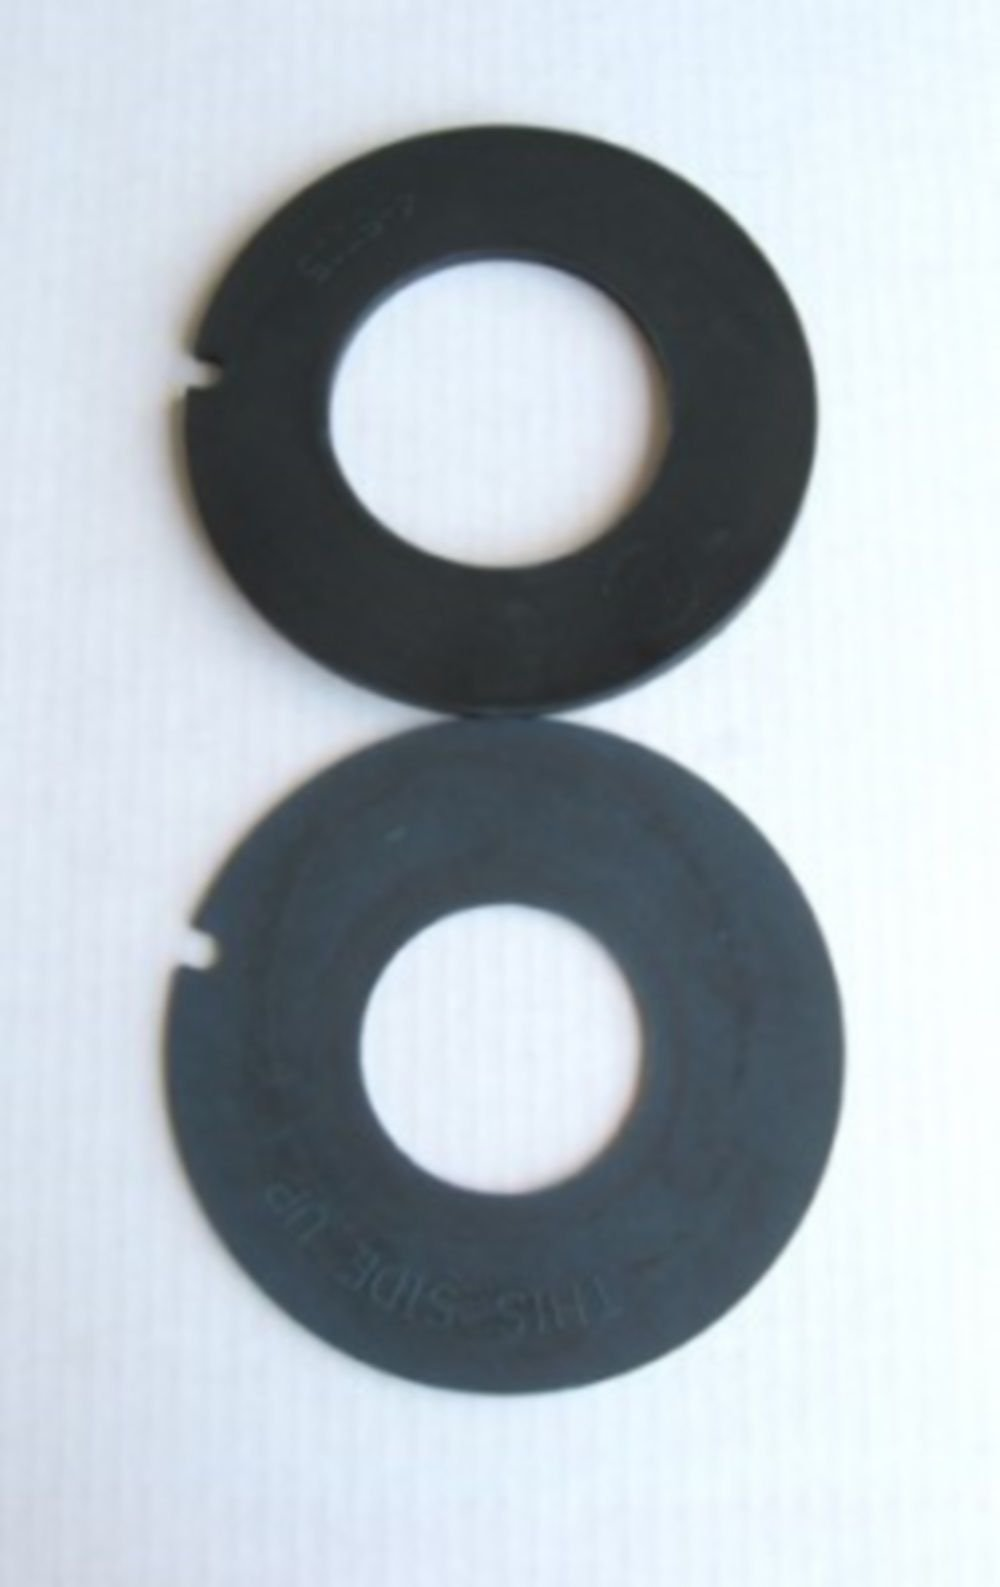 Dometic 385311462 Toilet Seal Kit by Dometic